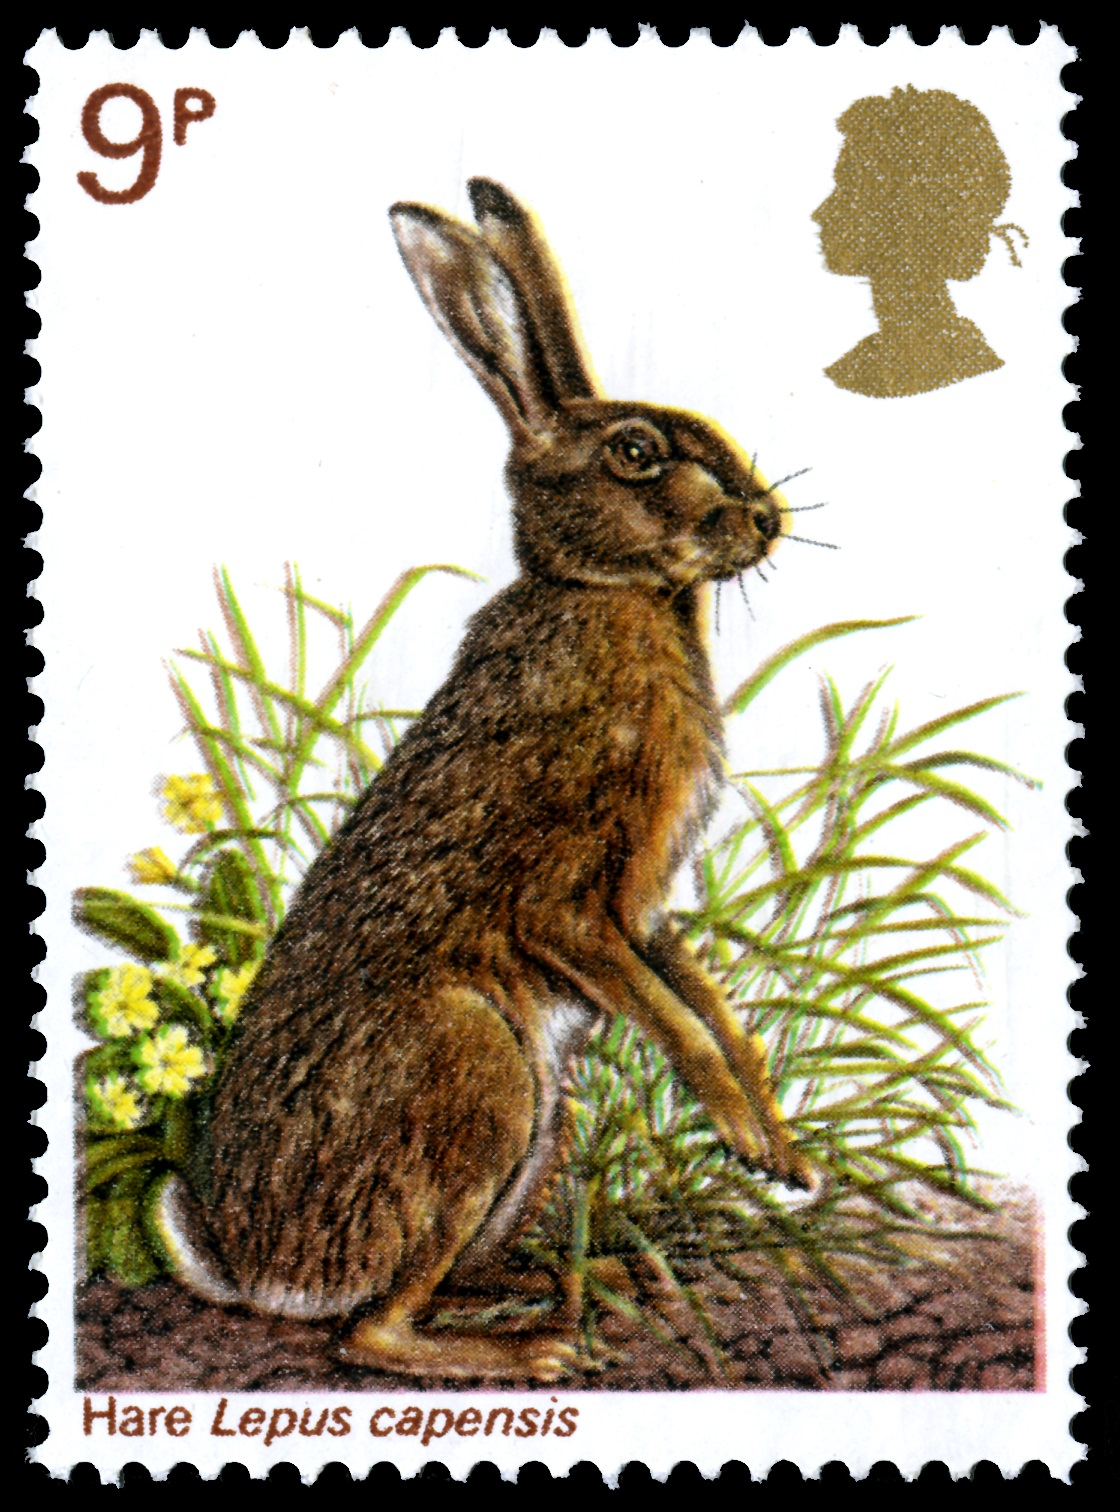 A standing brown hare on a 9 pence stamp.